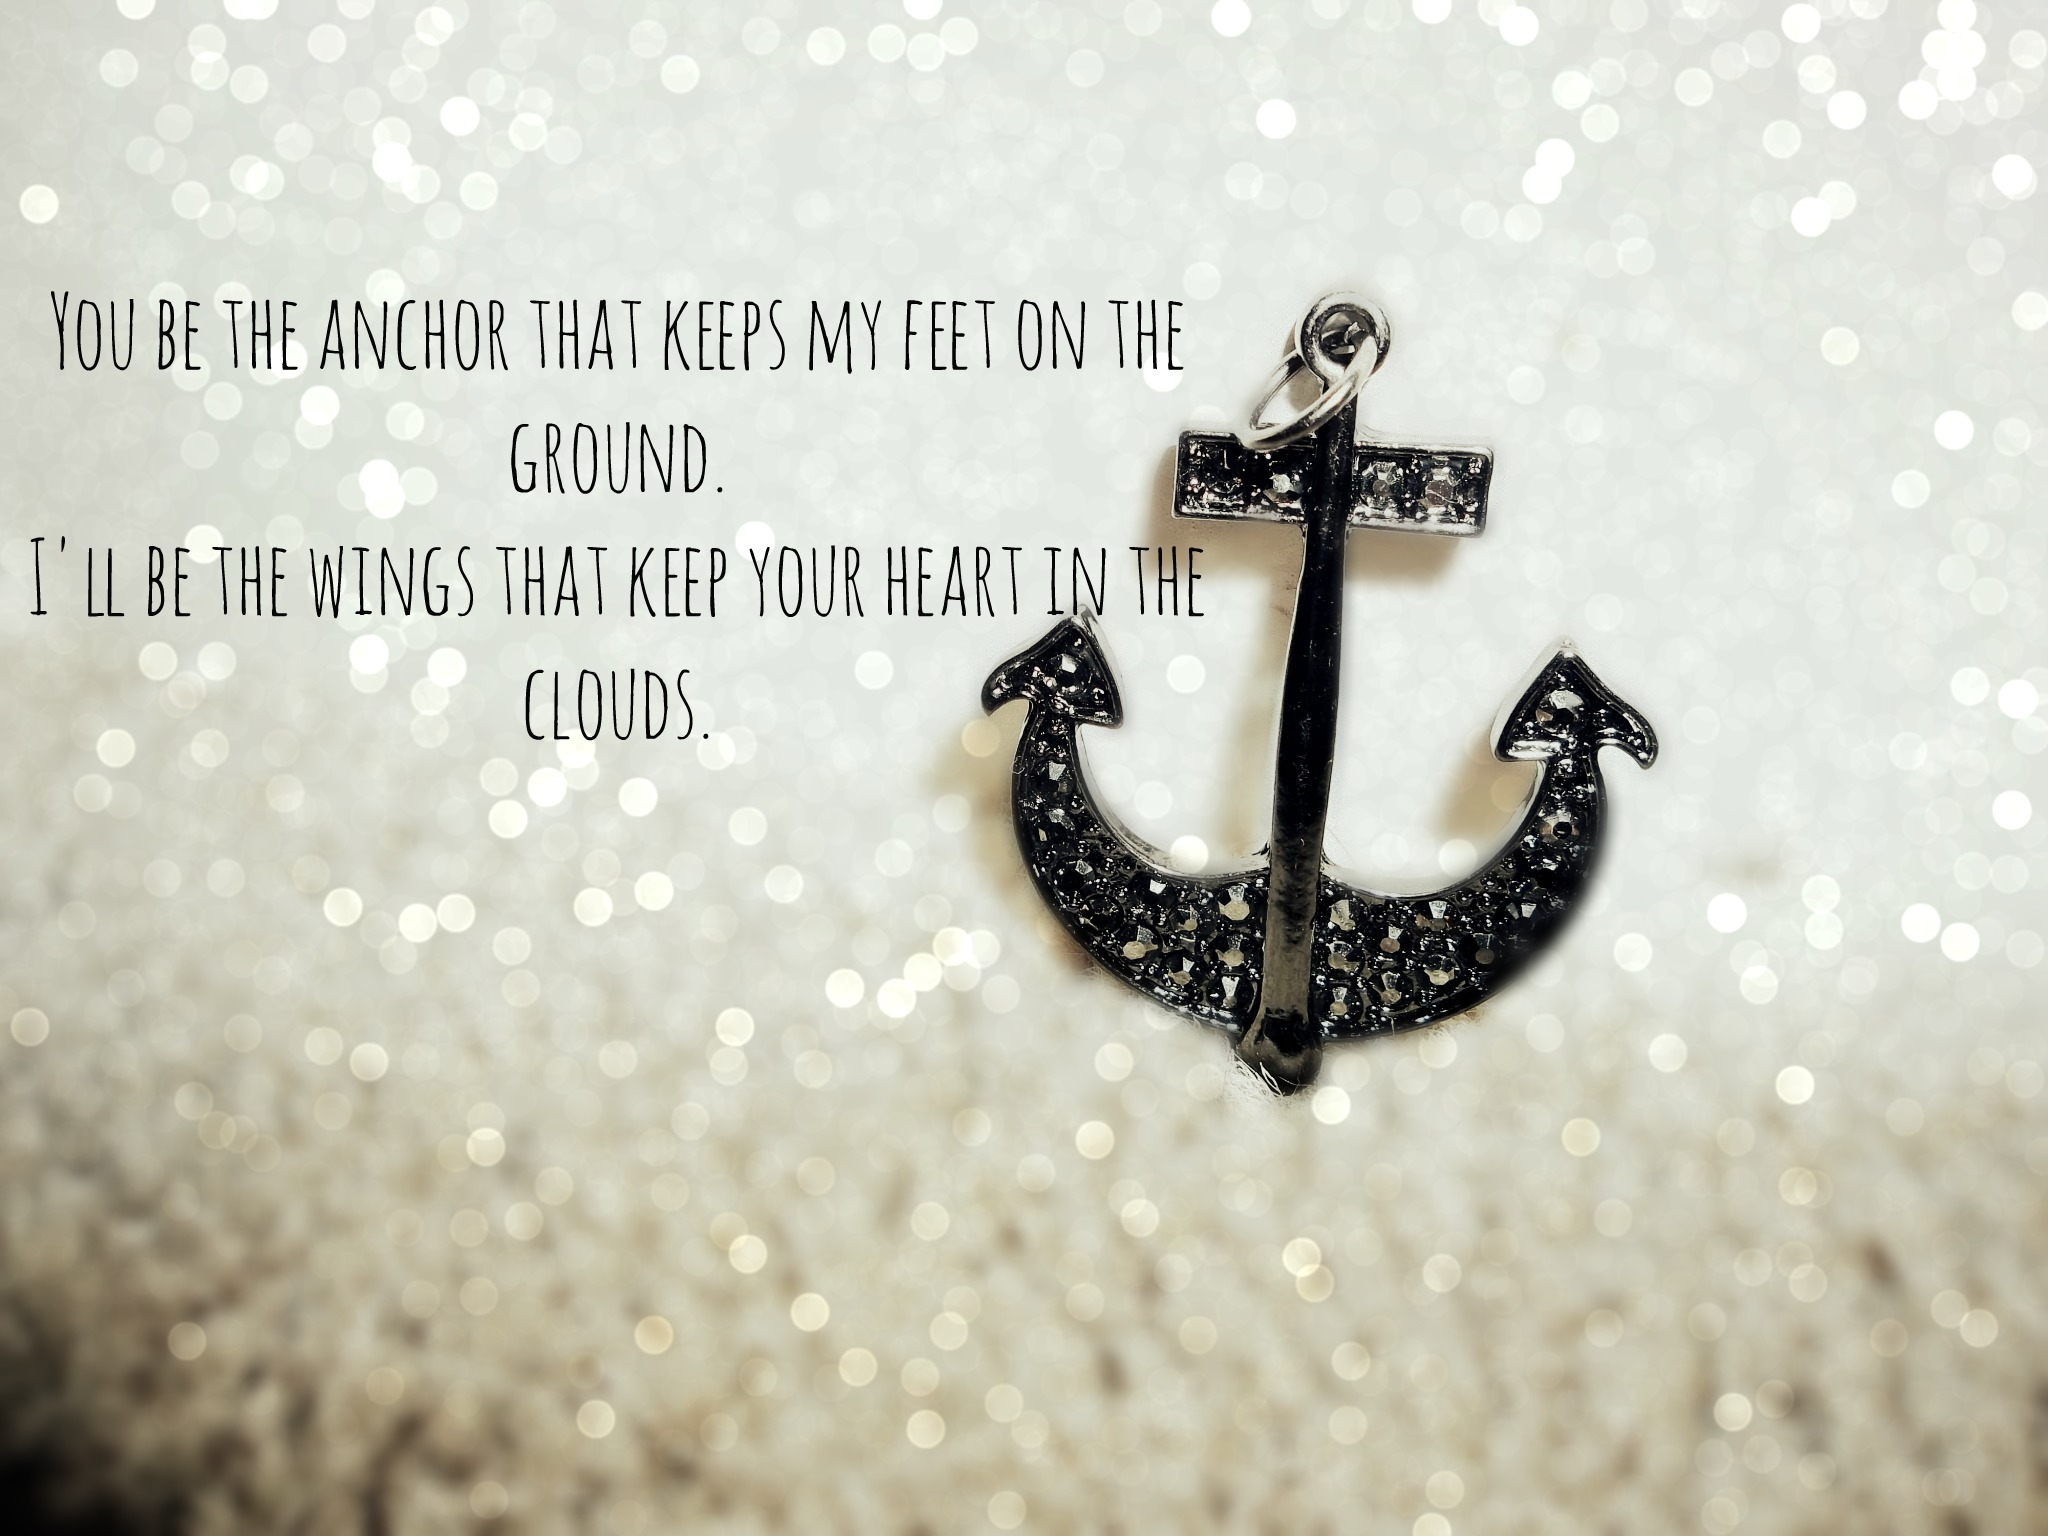 Navy Sailor Love Quotes | www.pixshark.com - Images ...